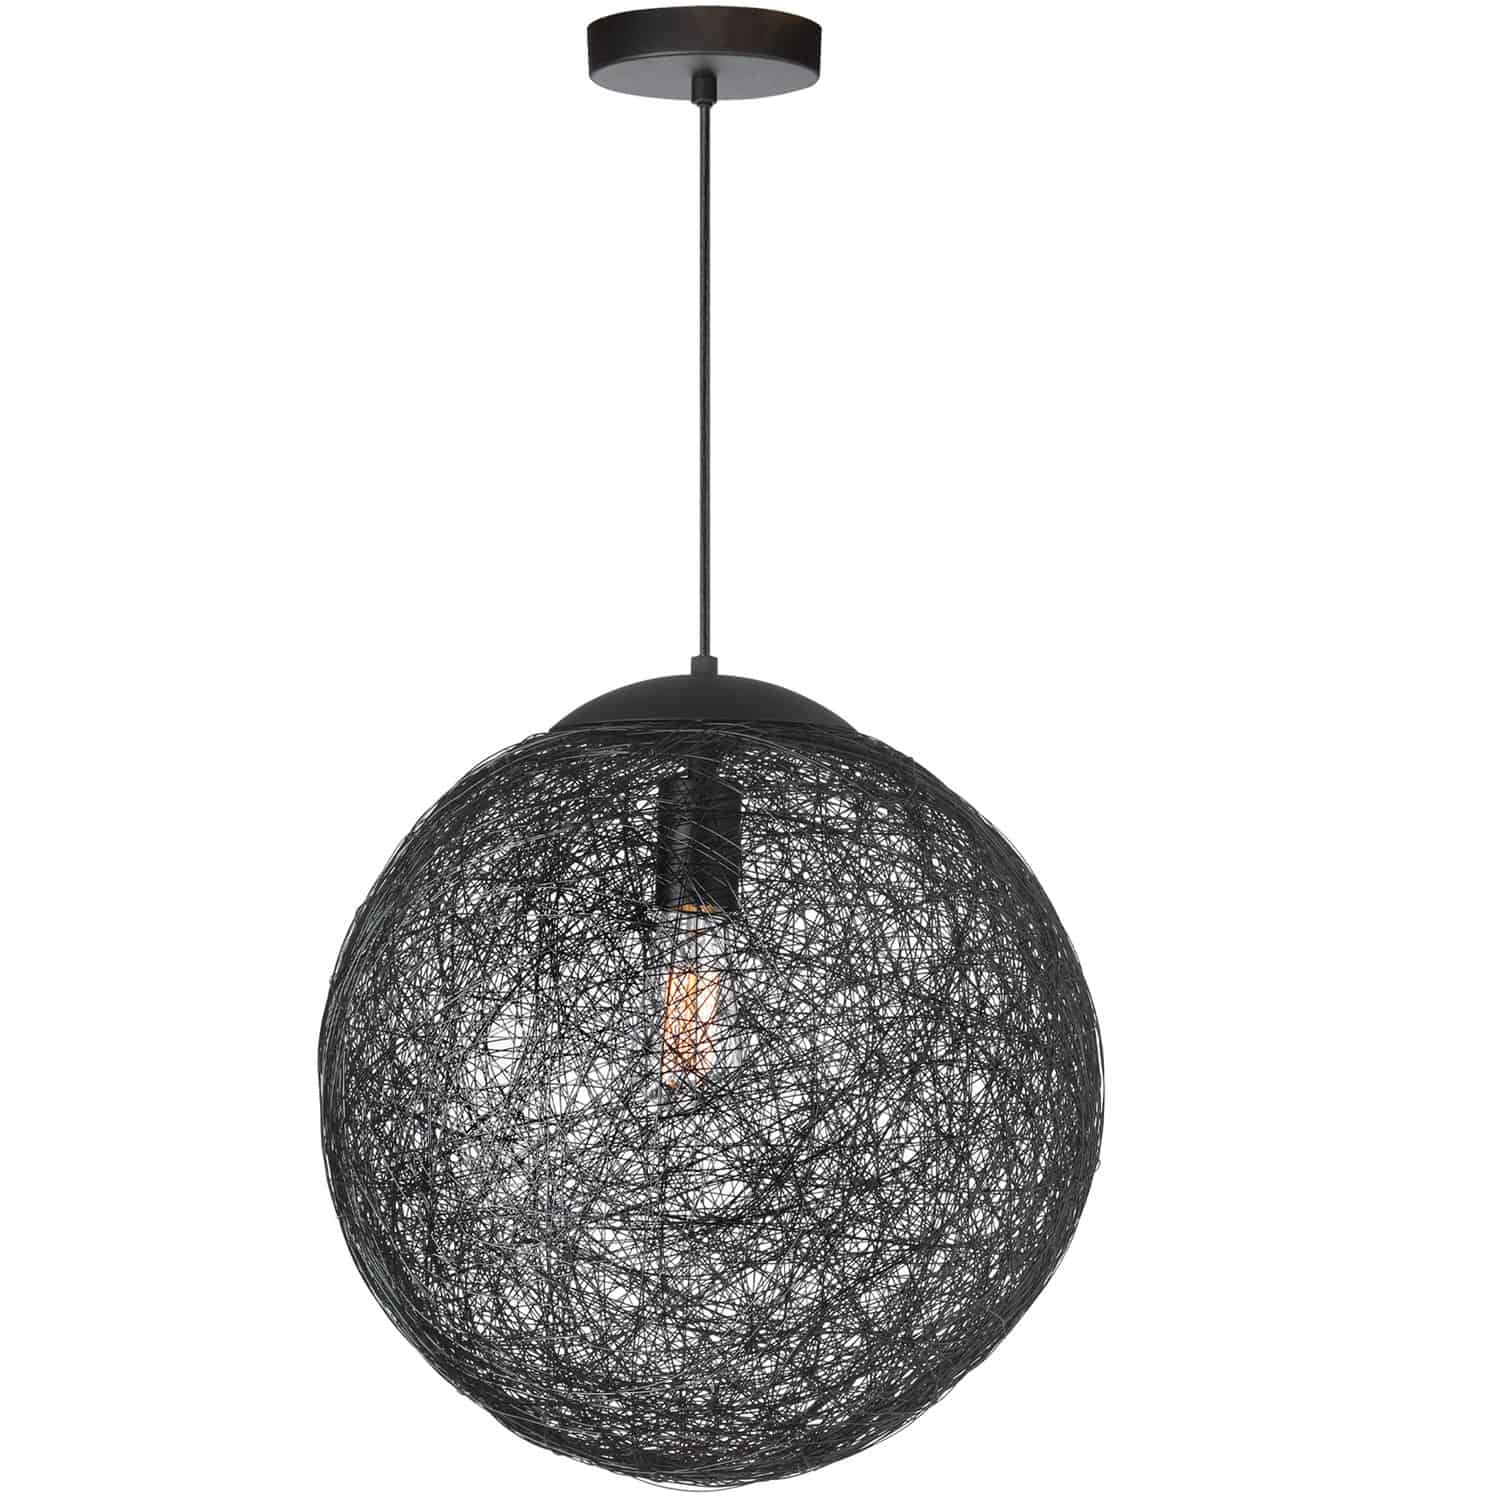 1 Light Incandescent Pendant, Black